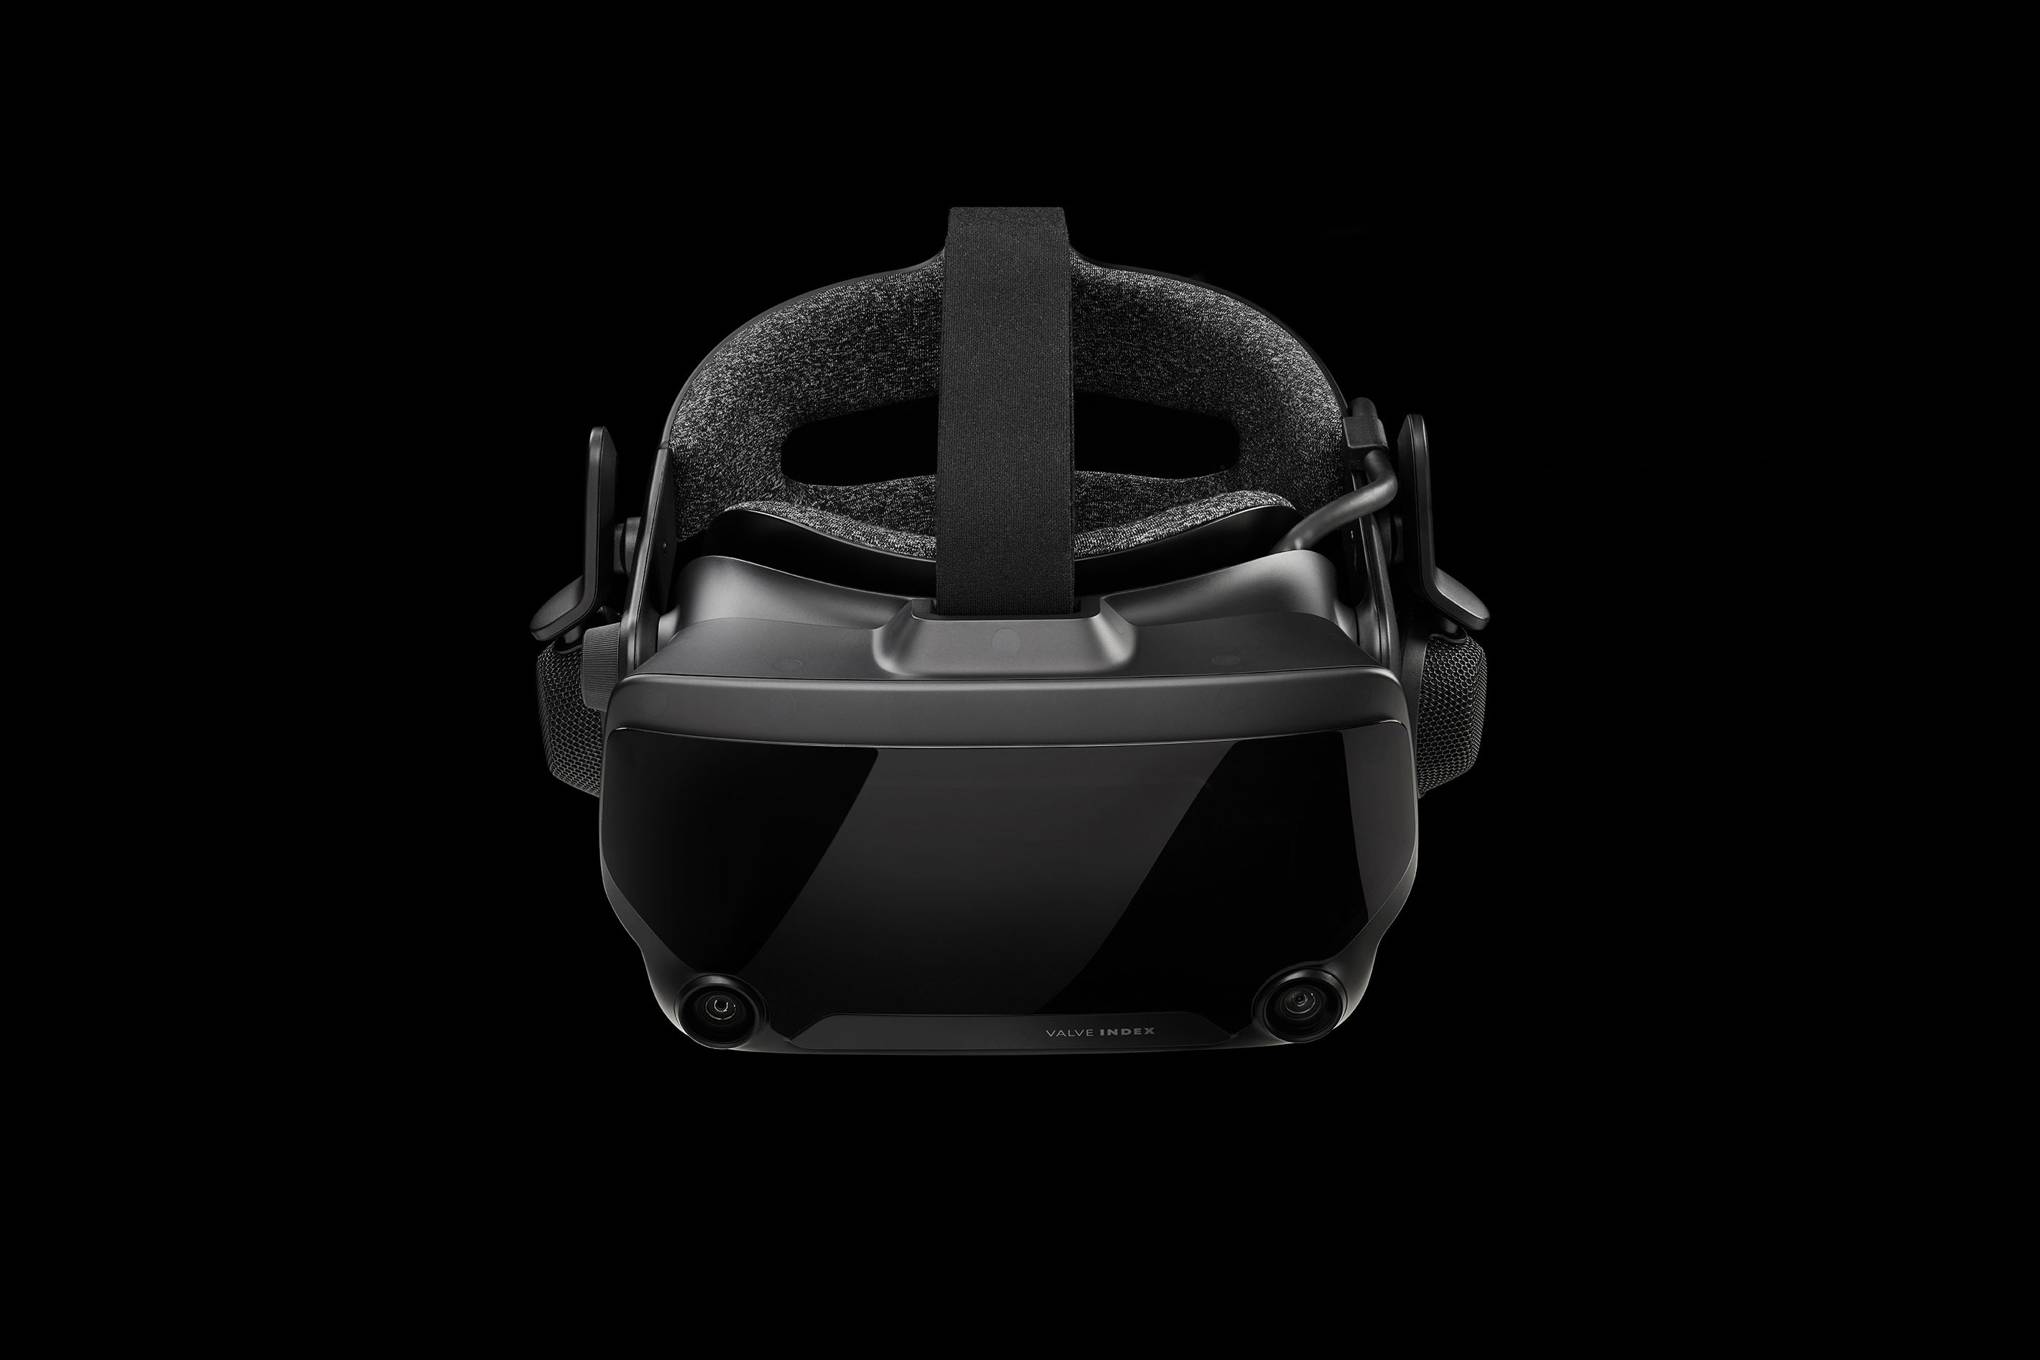 Valve Index is a risky, reluctant play to own VR gaming